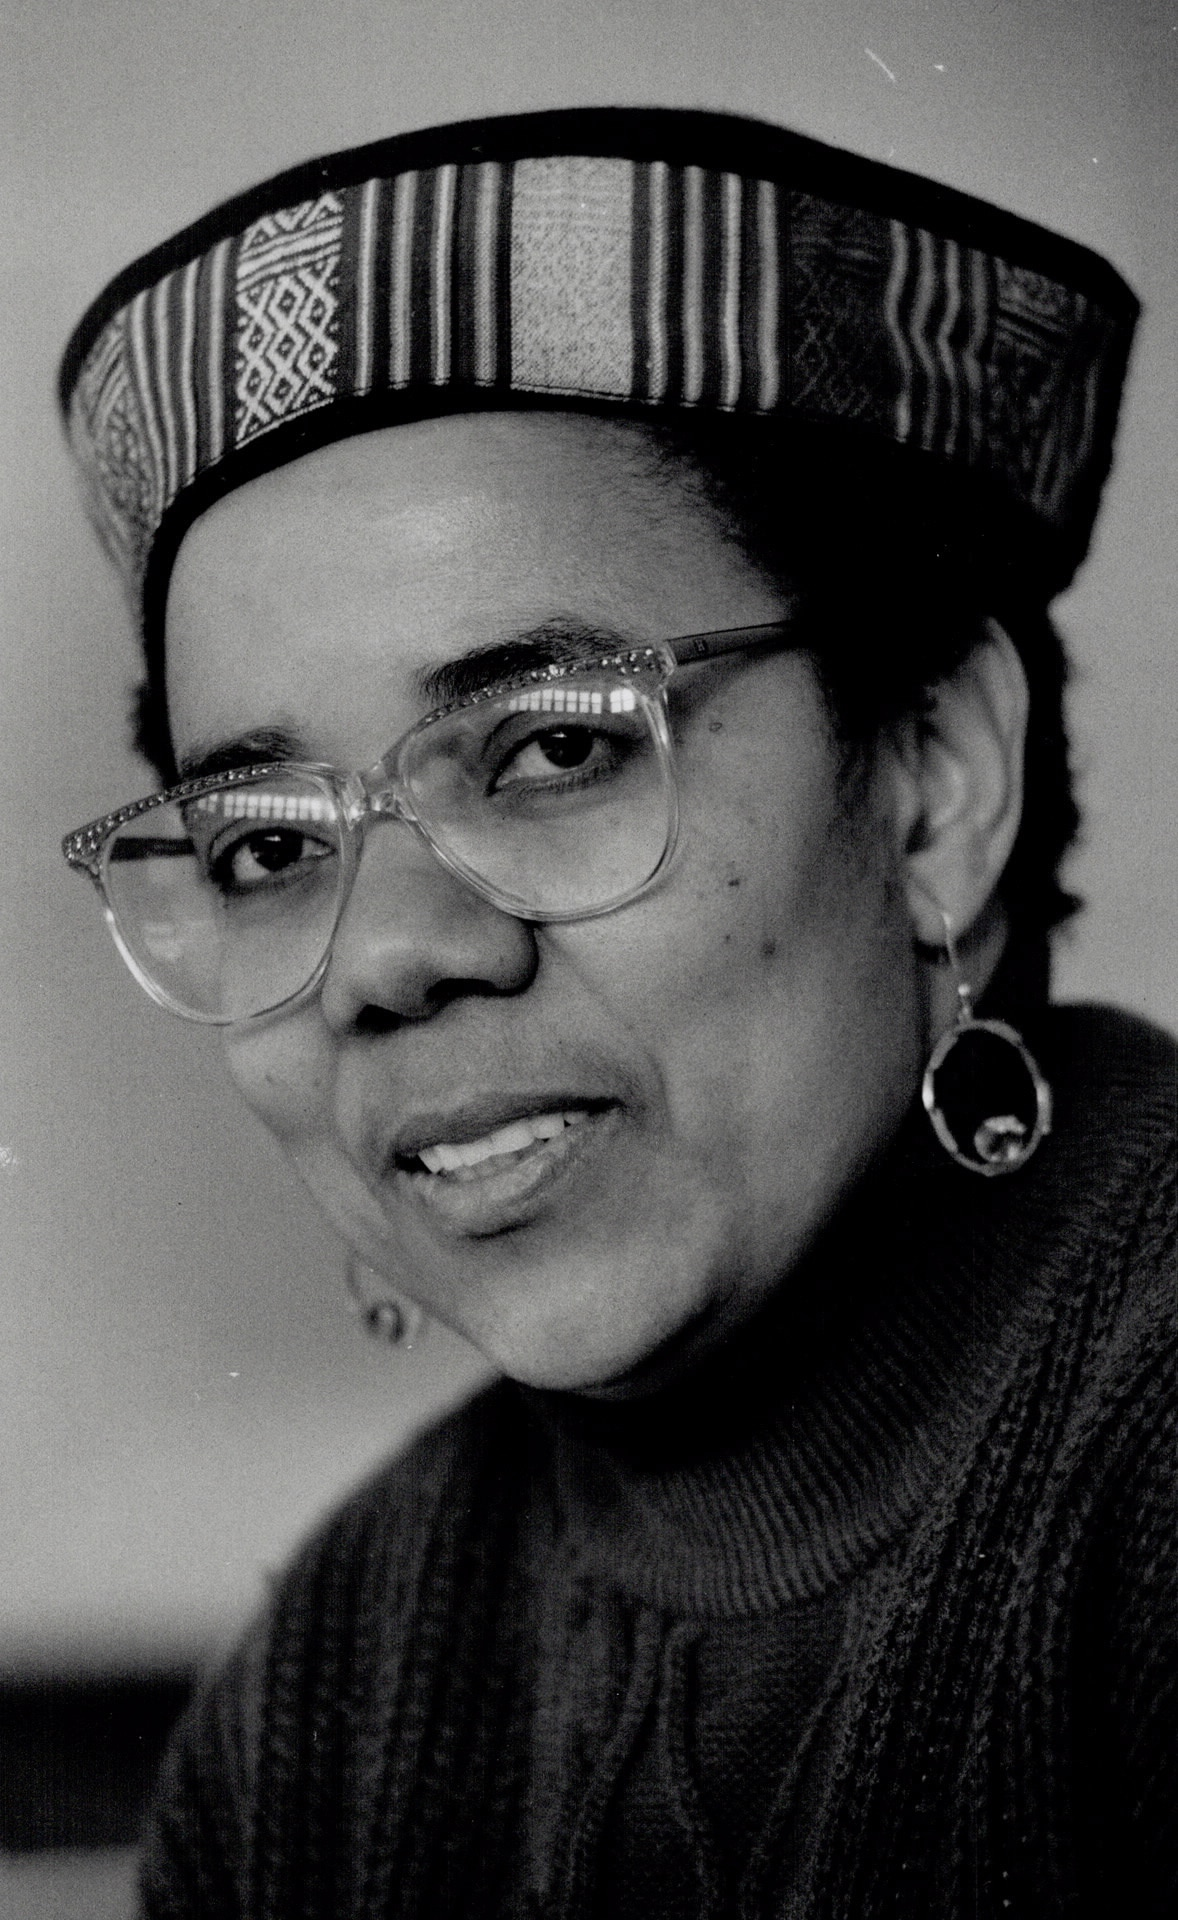 A black and white photo portrait of the head and shoulders of a woman. She looks at the camera. She is wearing a turtleneck sweater, an African-styled short cap, glasses, as well as dangly earrings.